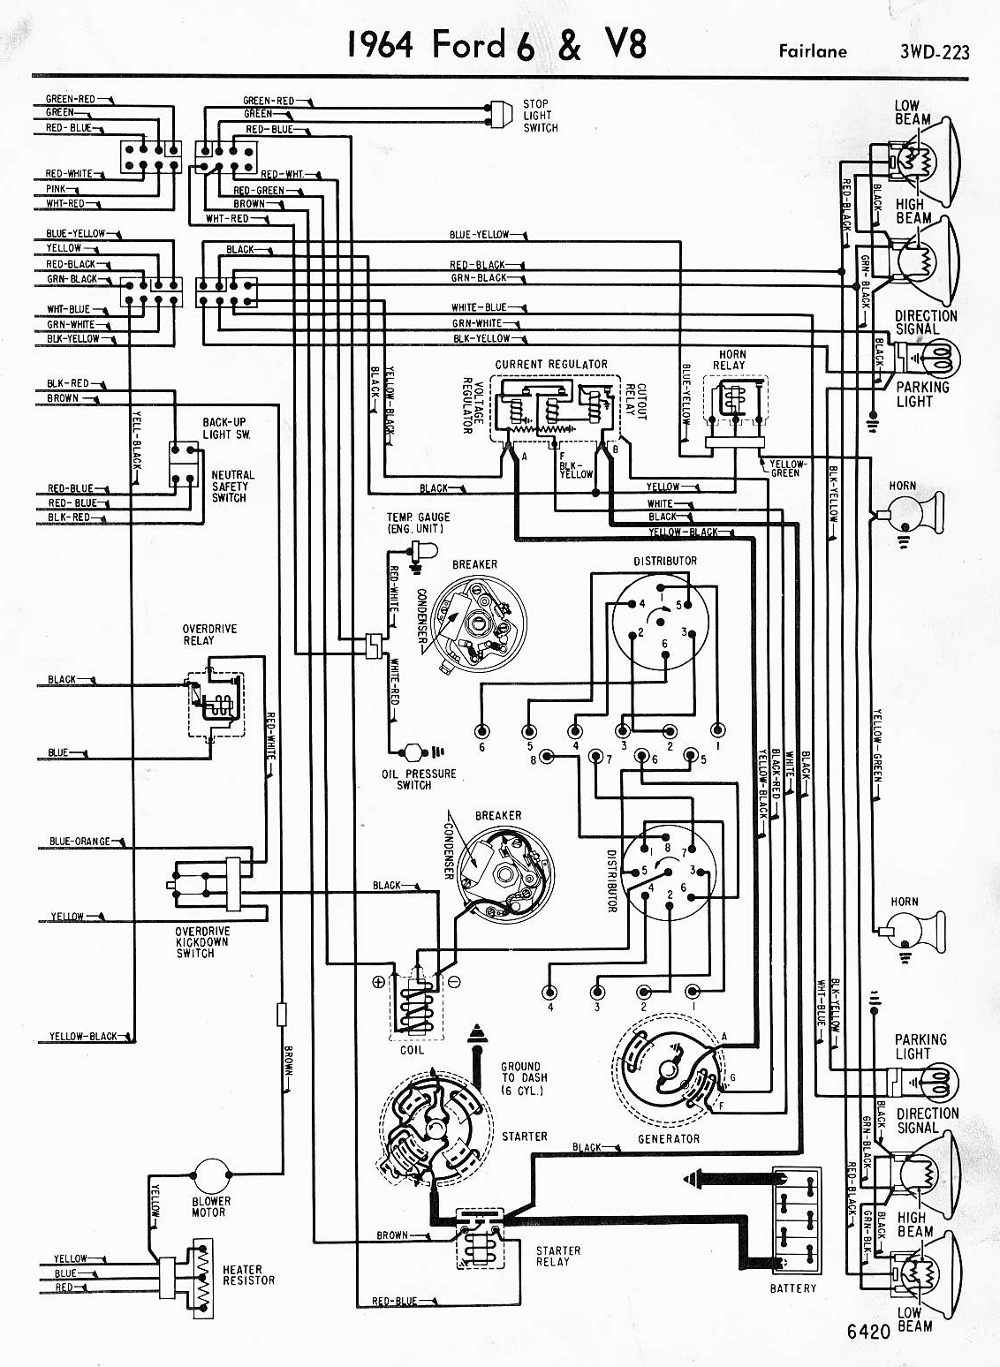 Photo Ford Wiring Diagram 1967 Ford F250 Wiring Diagram Wiring Diagram1967 Ford F100 Wiring Schematic Online Wiring Di Diagram Mustang Engine Technical Drawing